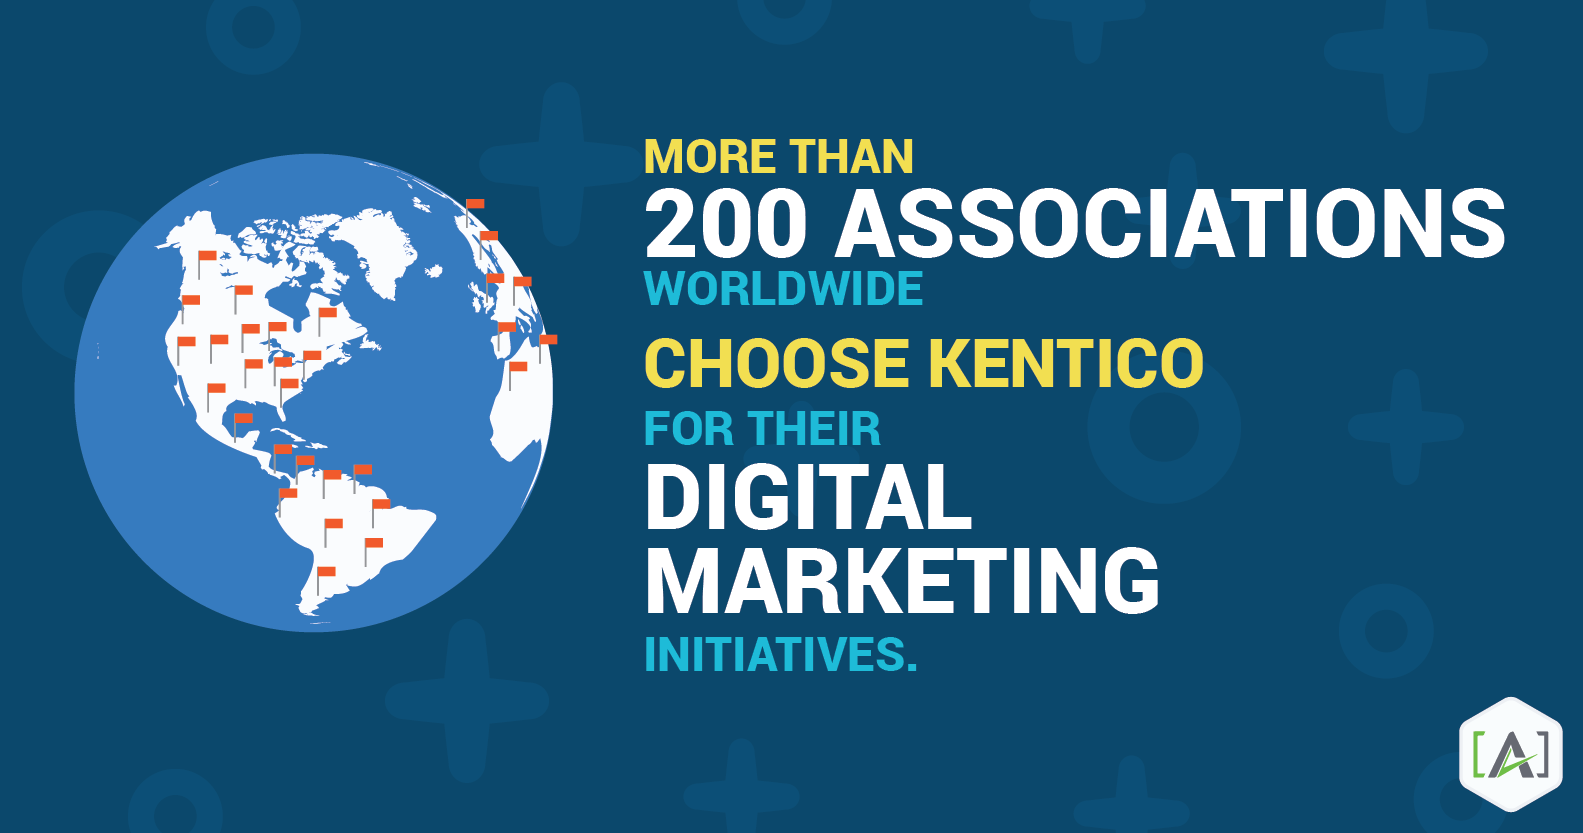 Kentico Powers Hundreds of Associations Worldwide